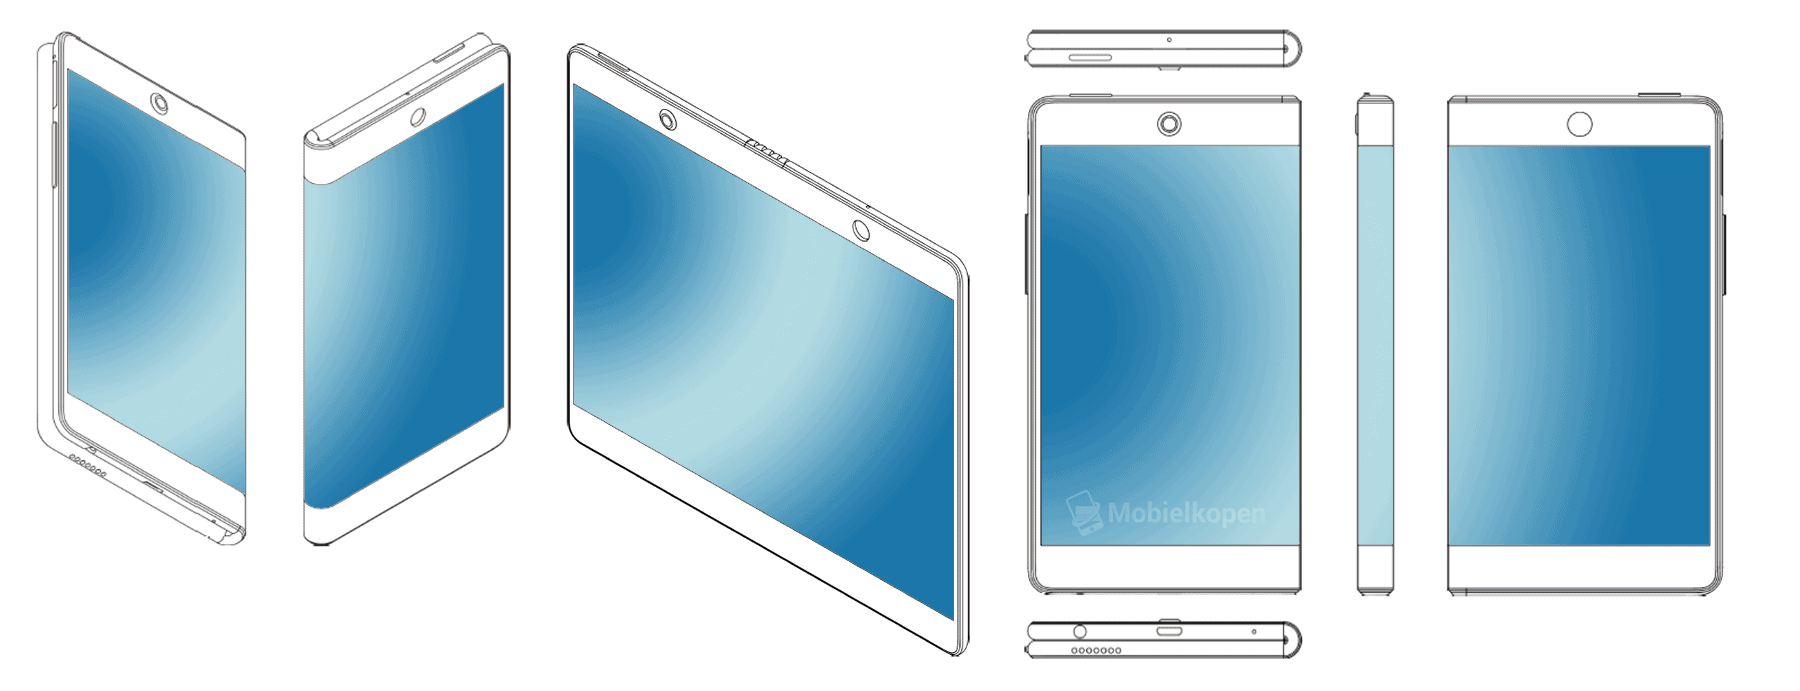 OPPO foldable phone patent 2